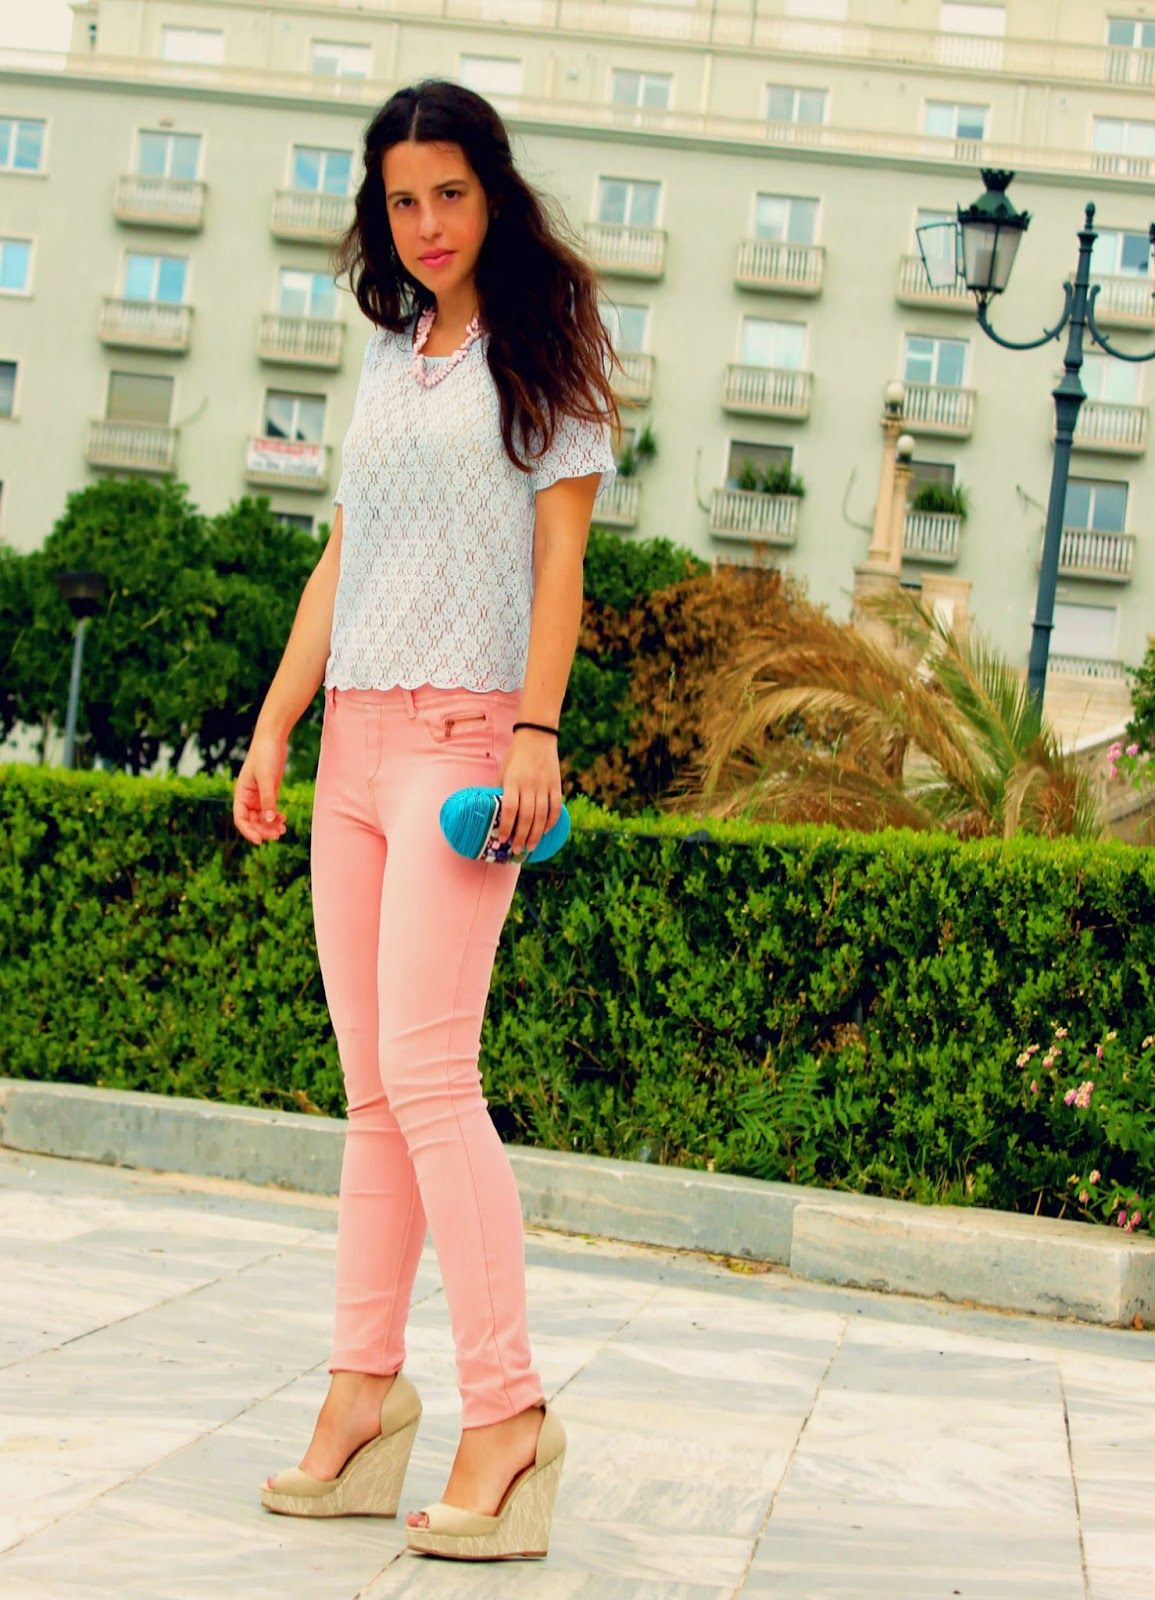 Women's White Lace Crew-neck T-shirt, Pink Skinny Jeans ...